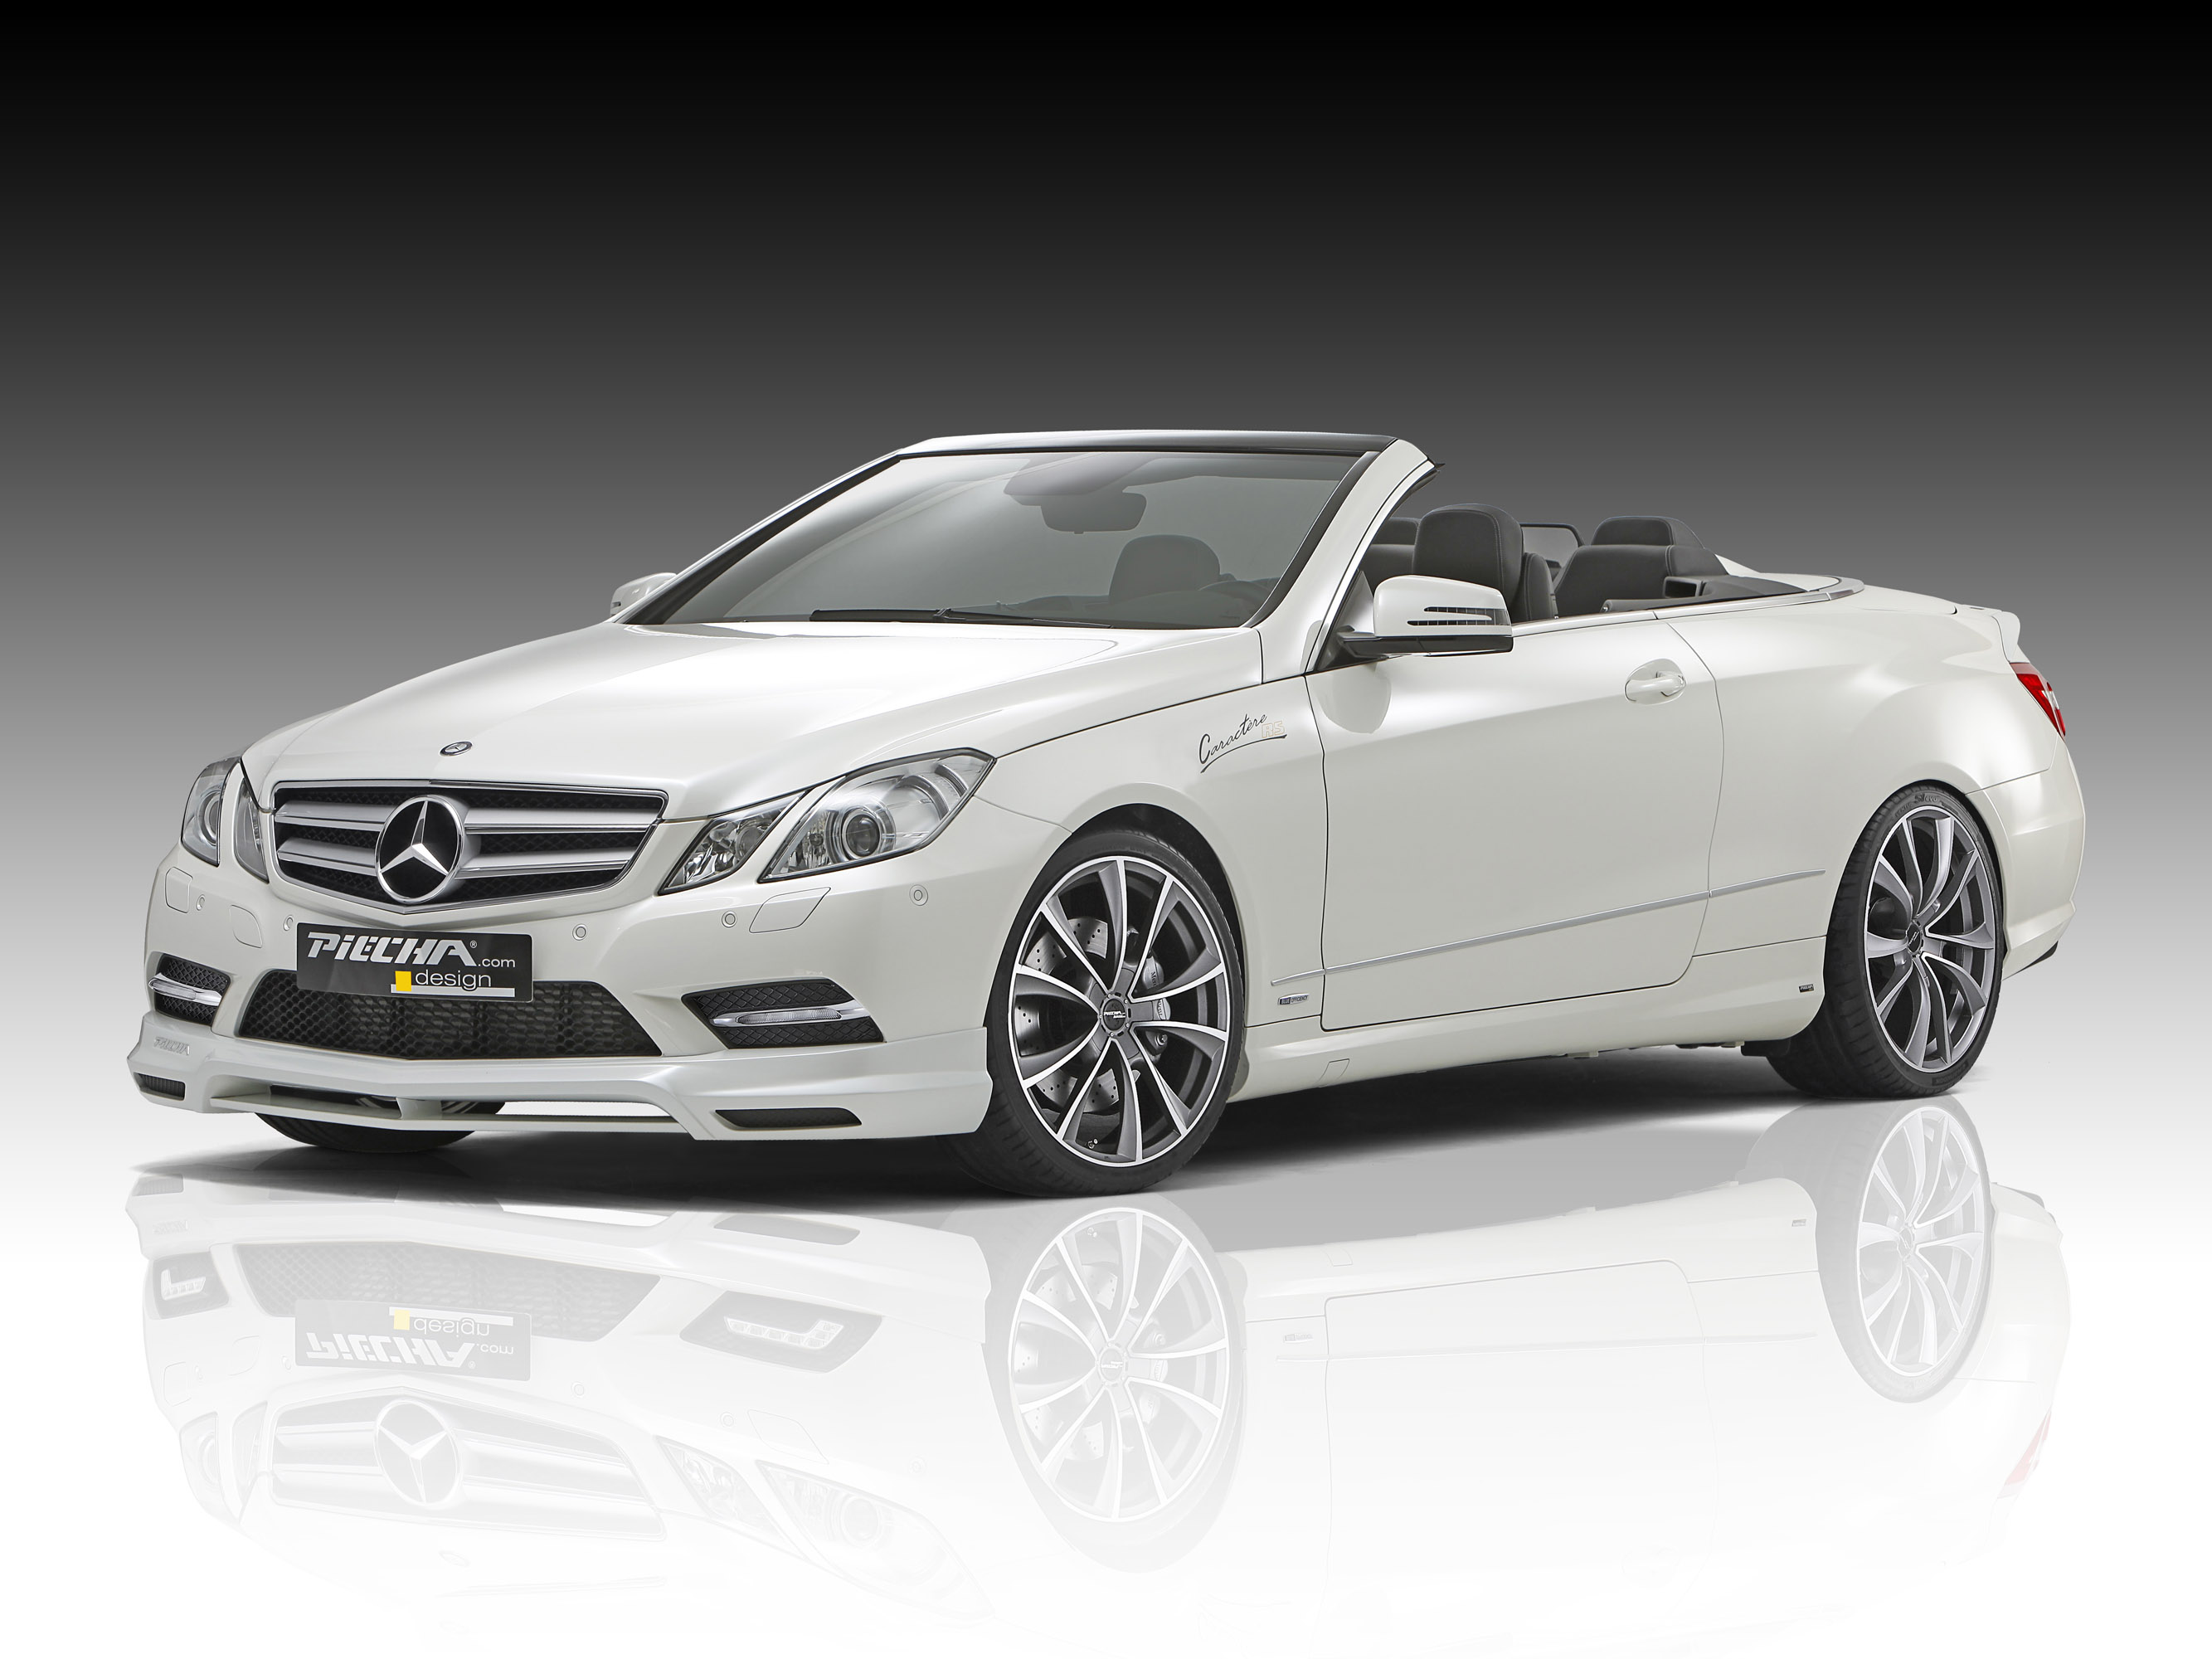 2016 Piecha Design Mercedes Benz E Cl Convertible And Coupe